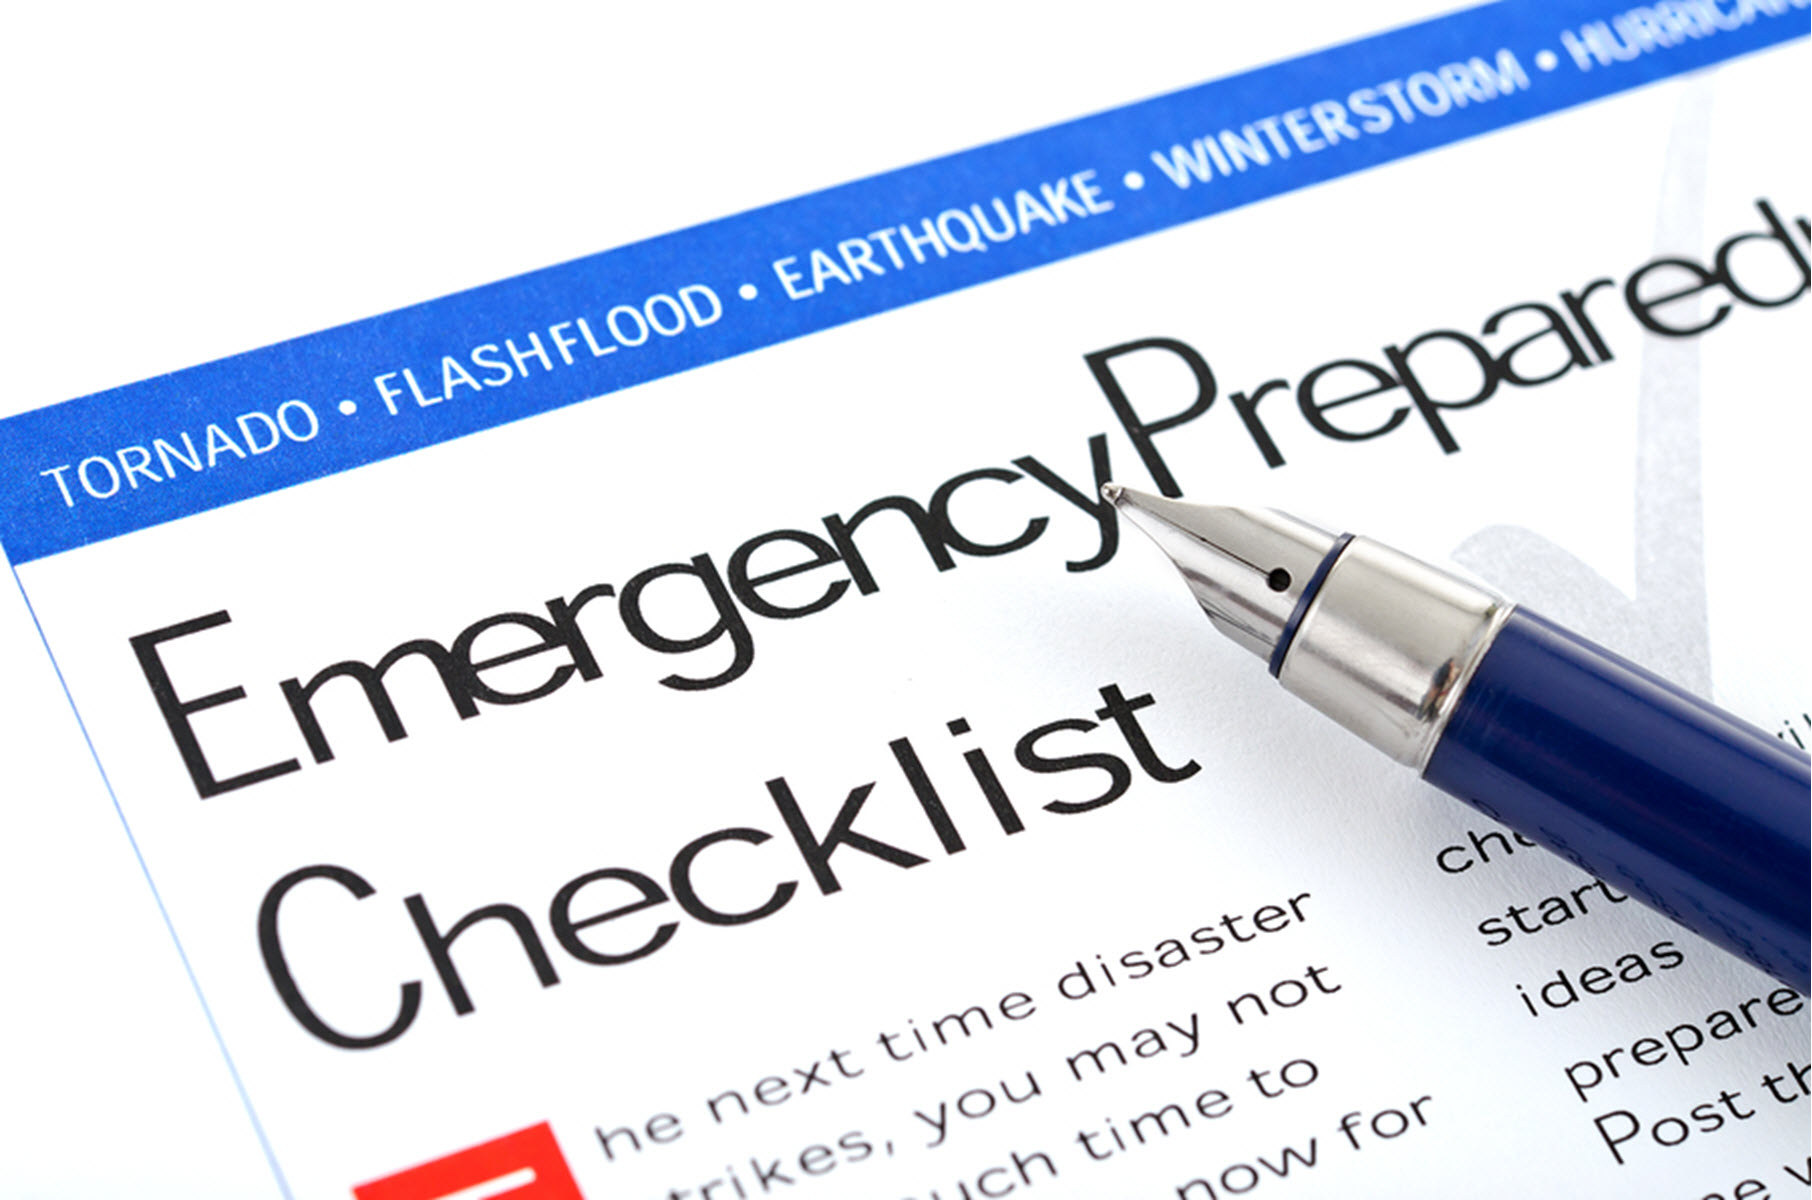 Caregiver in Marysville CA: Fires, Storms, and Other Emergencies